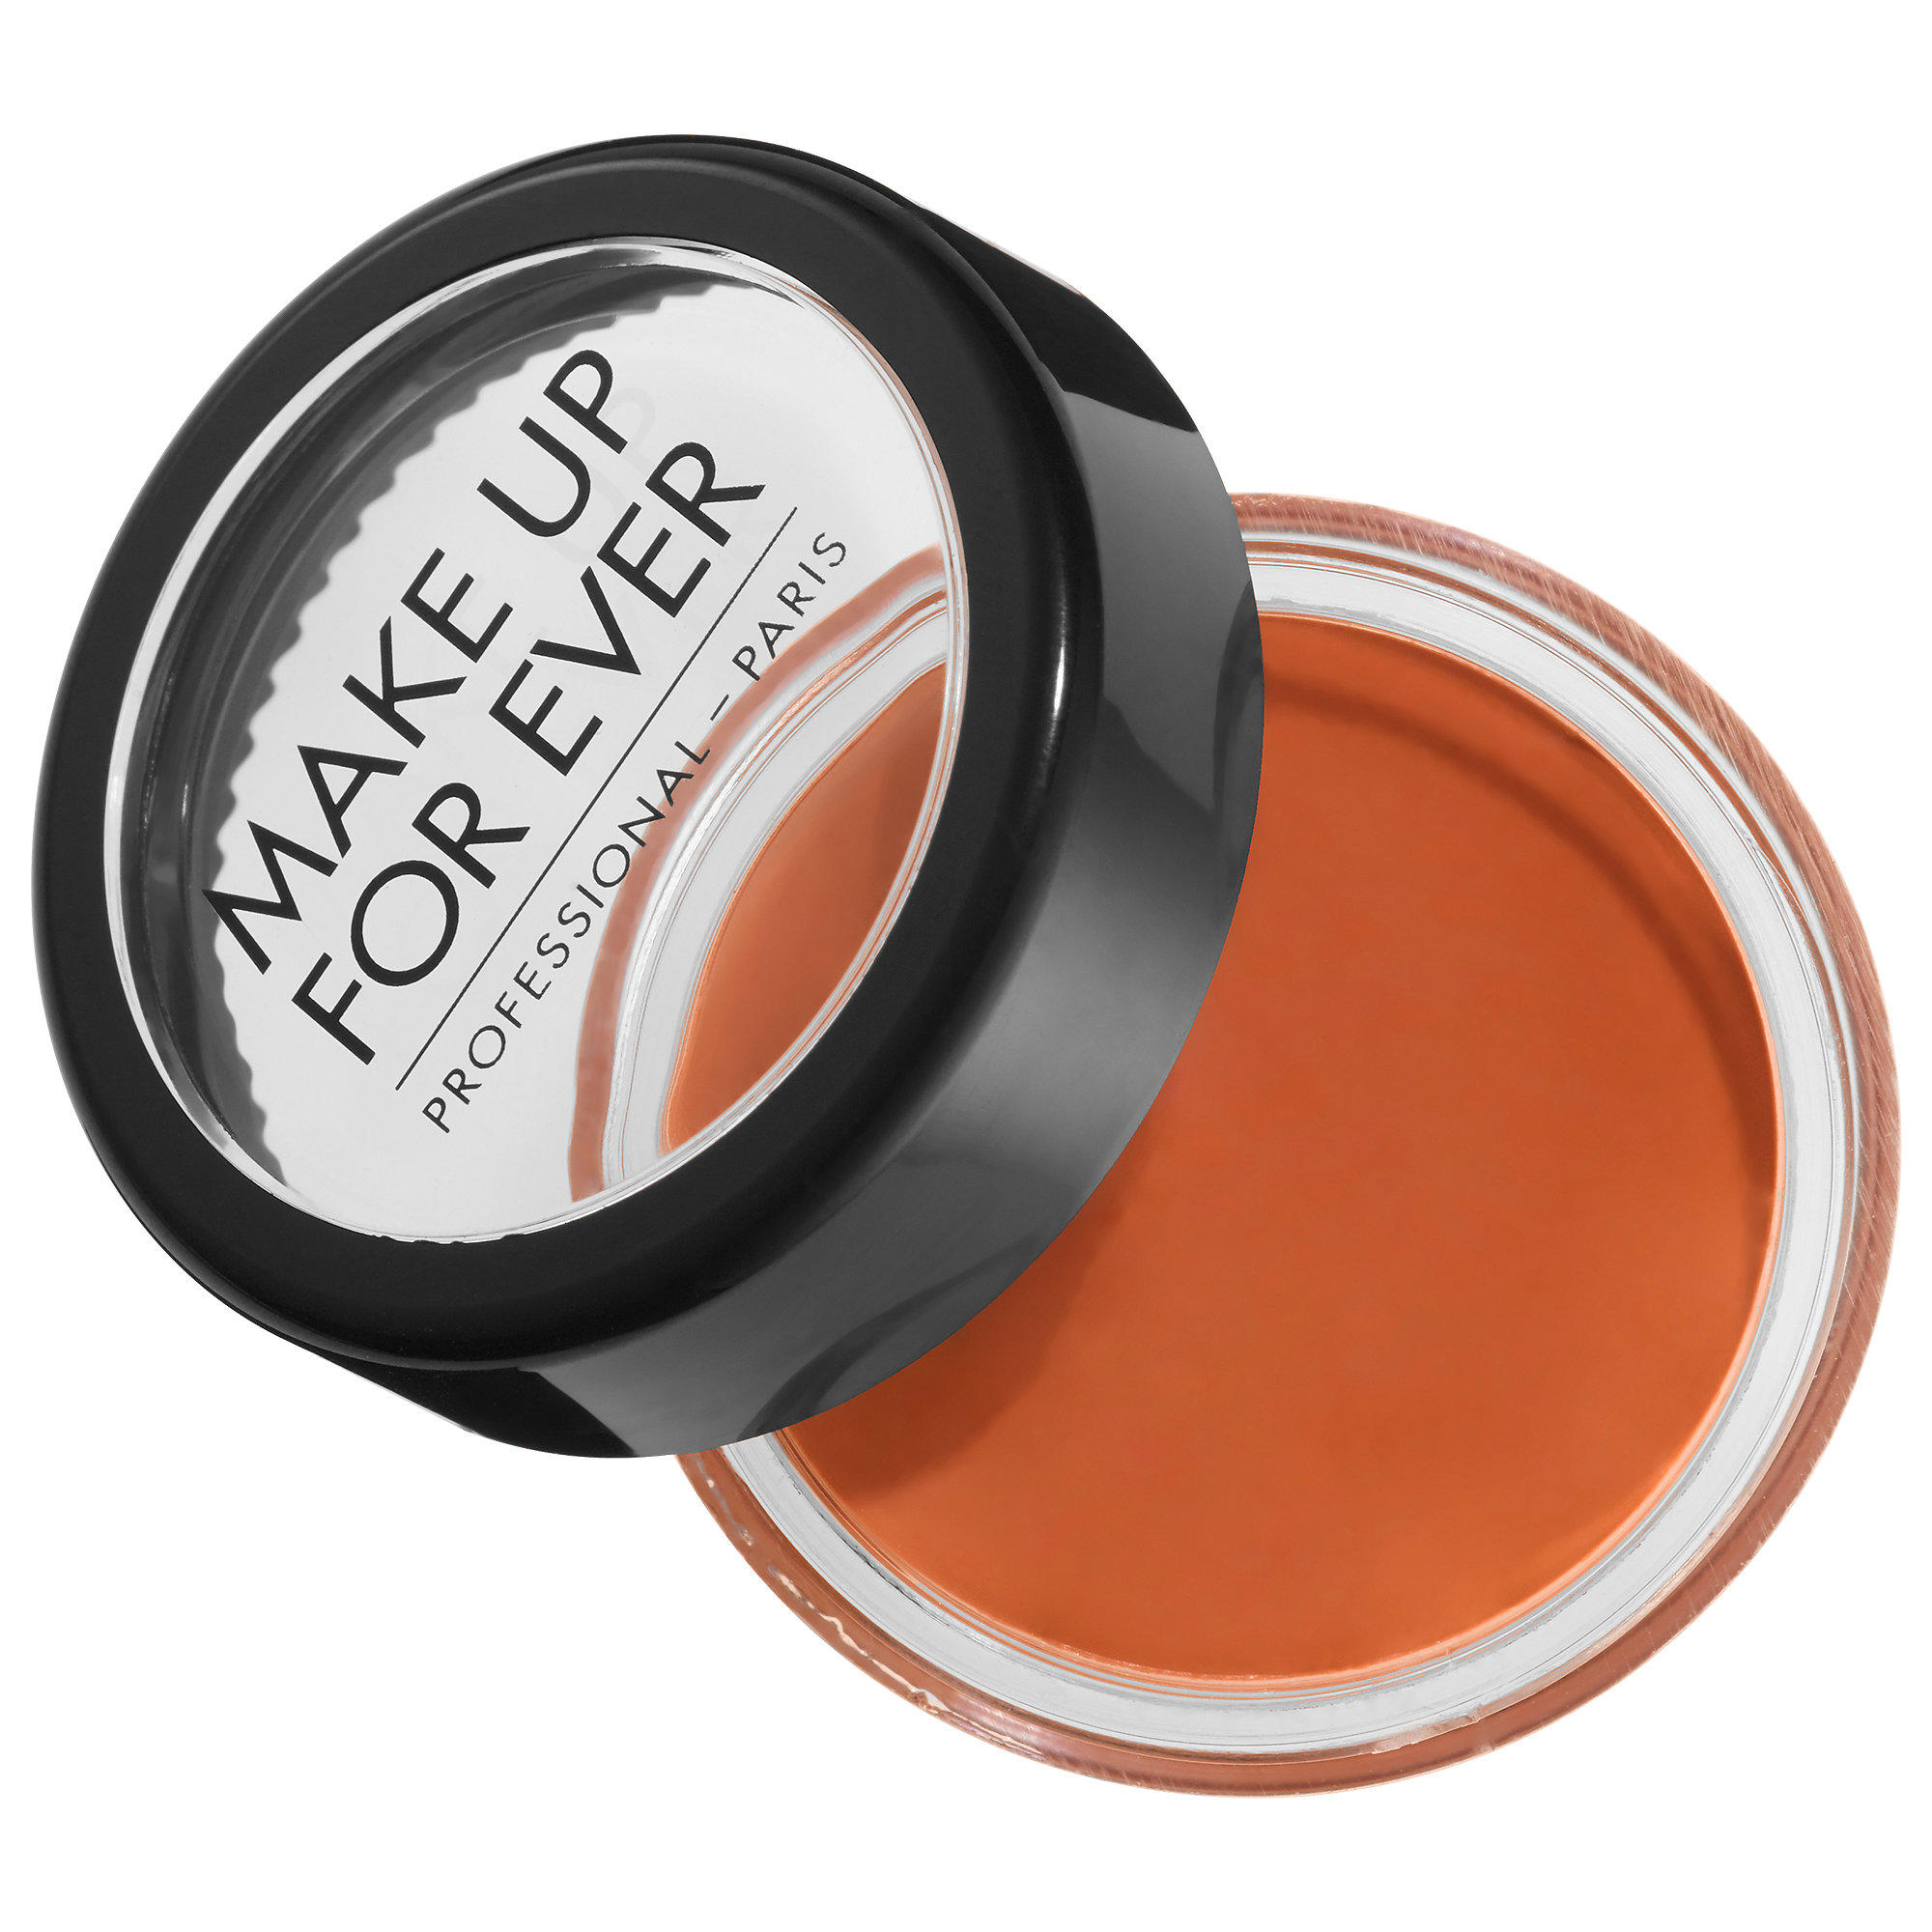 Concealer Is A Hot Beauty Item Right Now It Conceal Under Eye Dark Circles With Lipstick